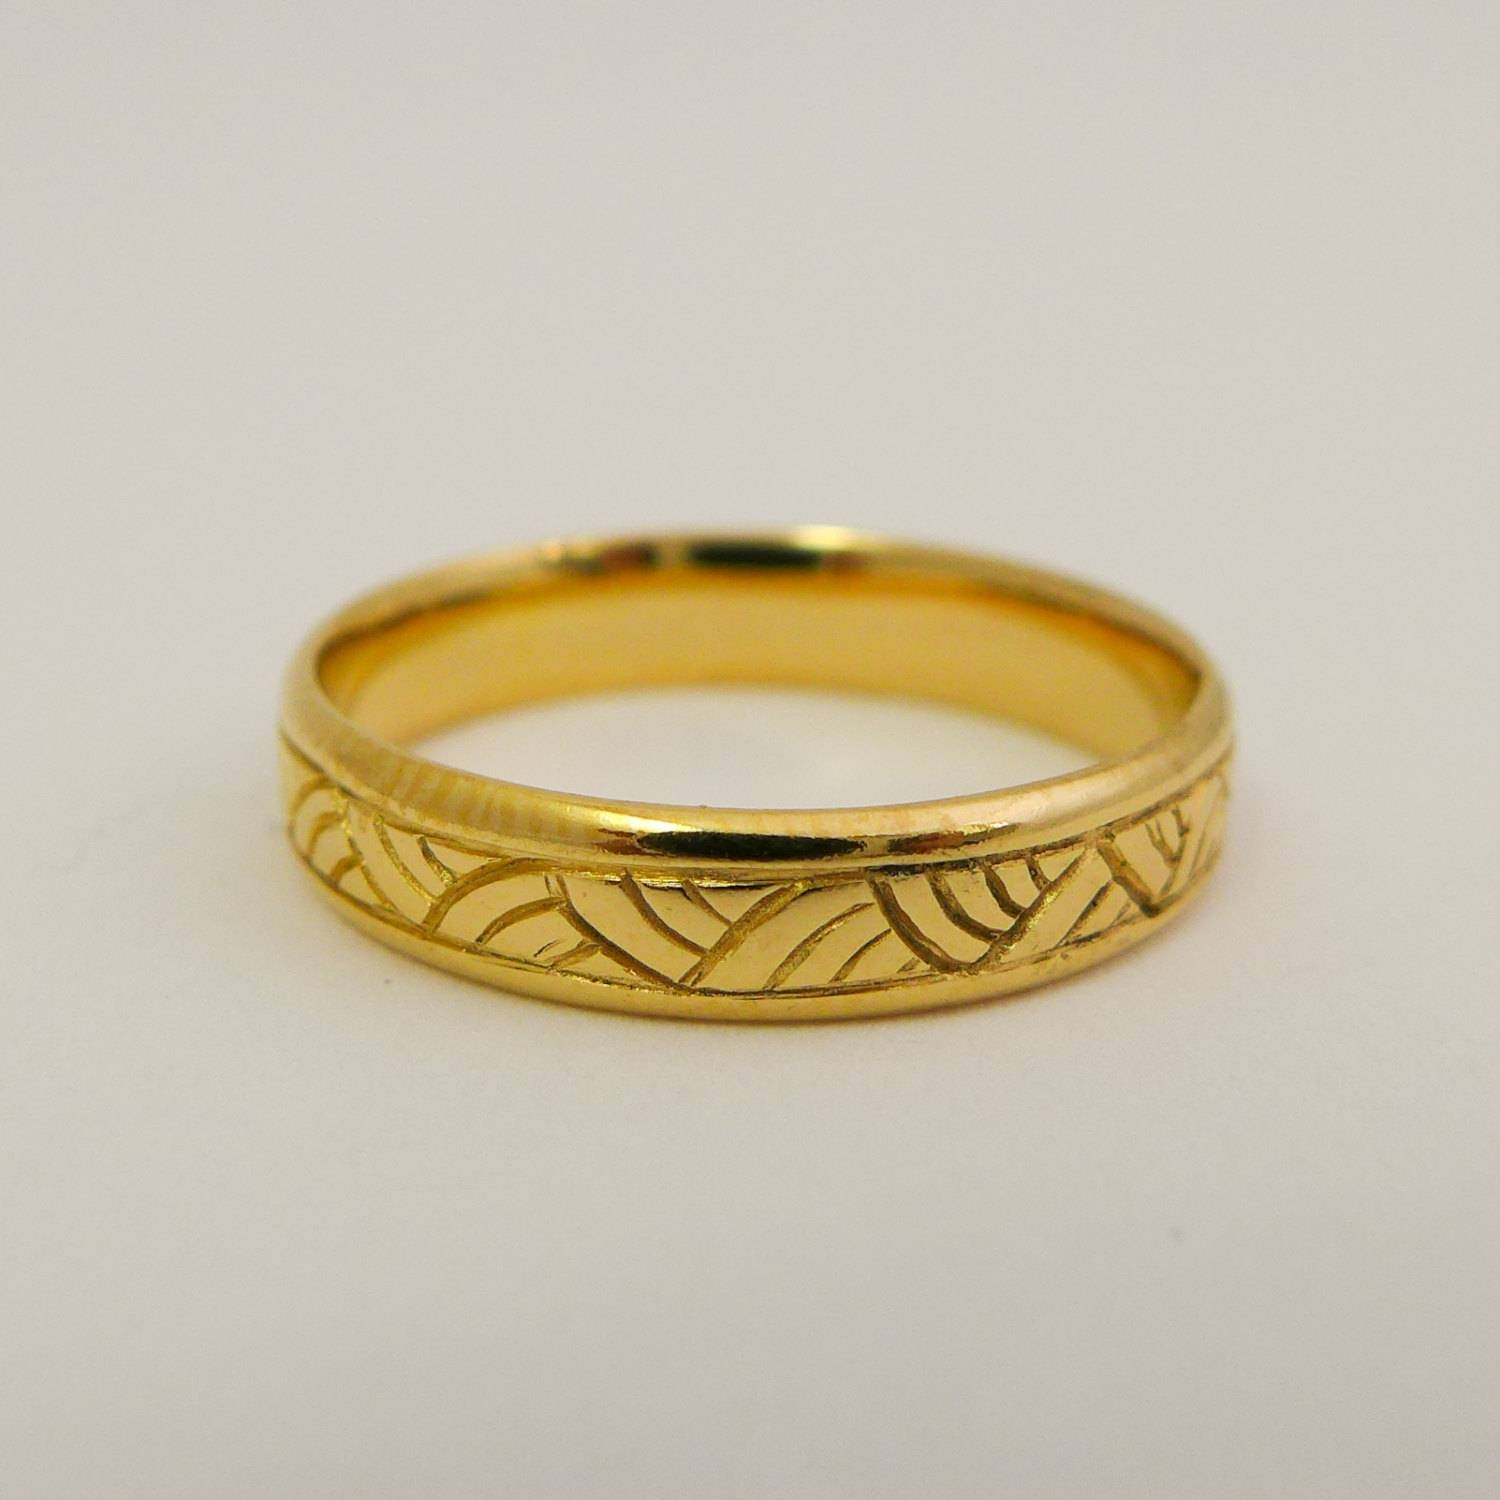 Yellow Gold Wedding Ring 14 Karat Solid Gold Wedding Band For Pertaining To 14 Karat Gold Wedding Bands (Gallery 2 of 15)